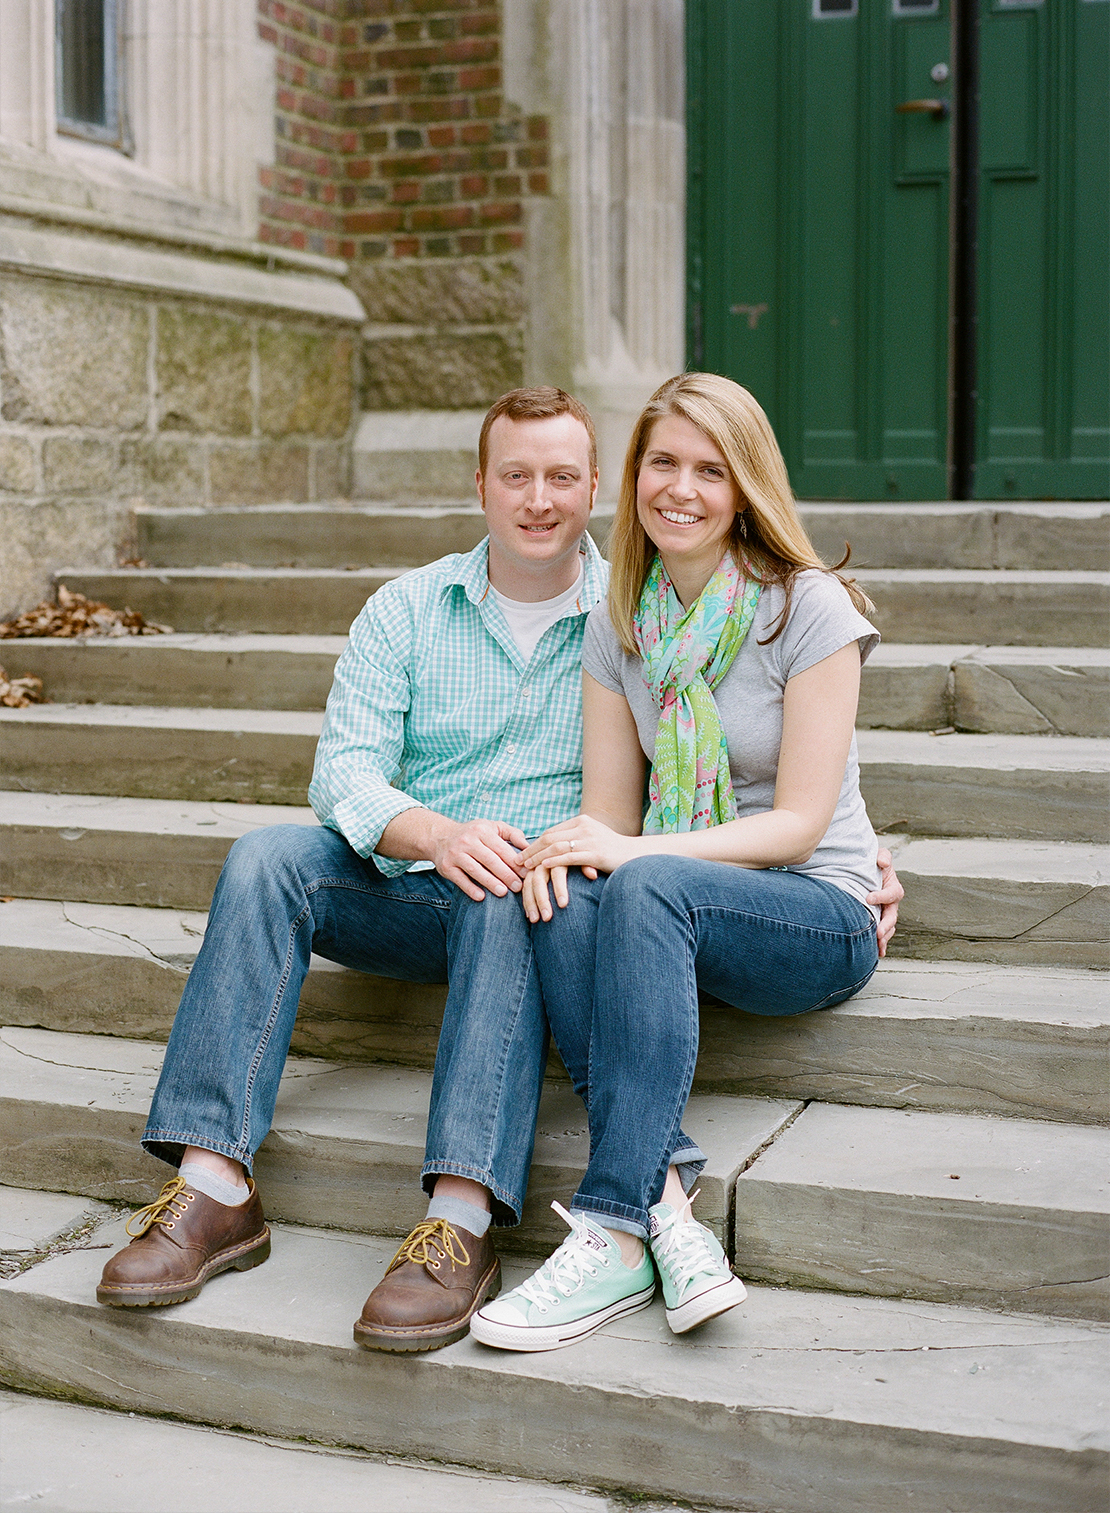 01_Wellesley-College_campus_engagement_session_film_photographer_heidi_vail